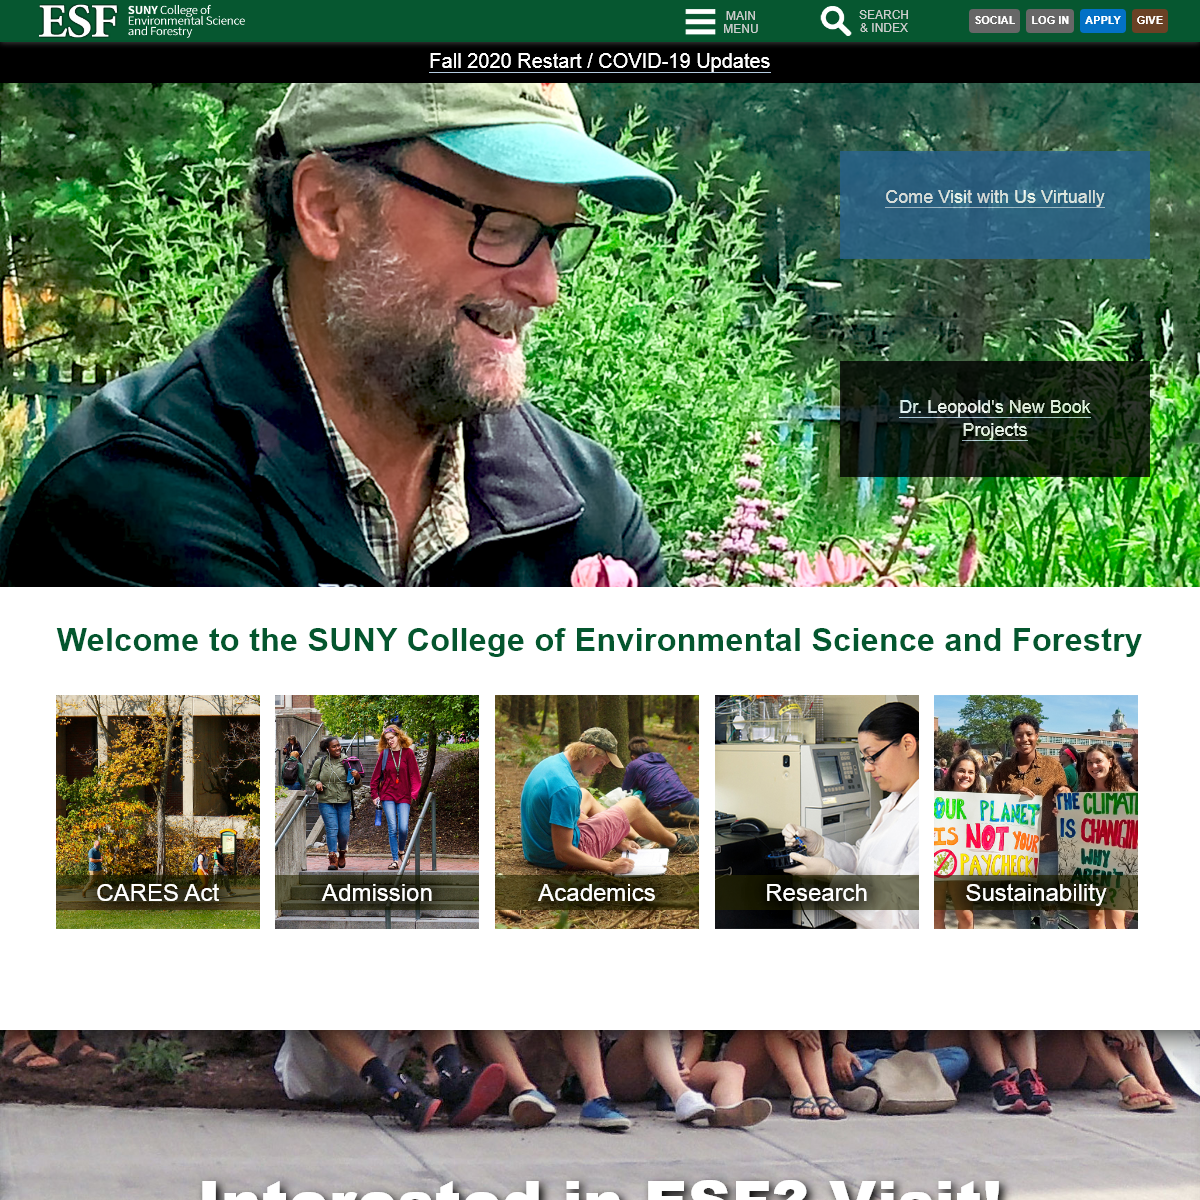 ESF - SUNY ESF - College of Environmental Science and Forestry